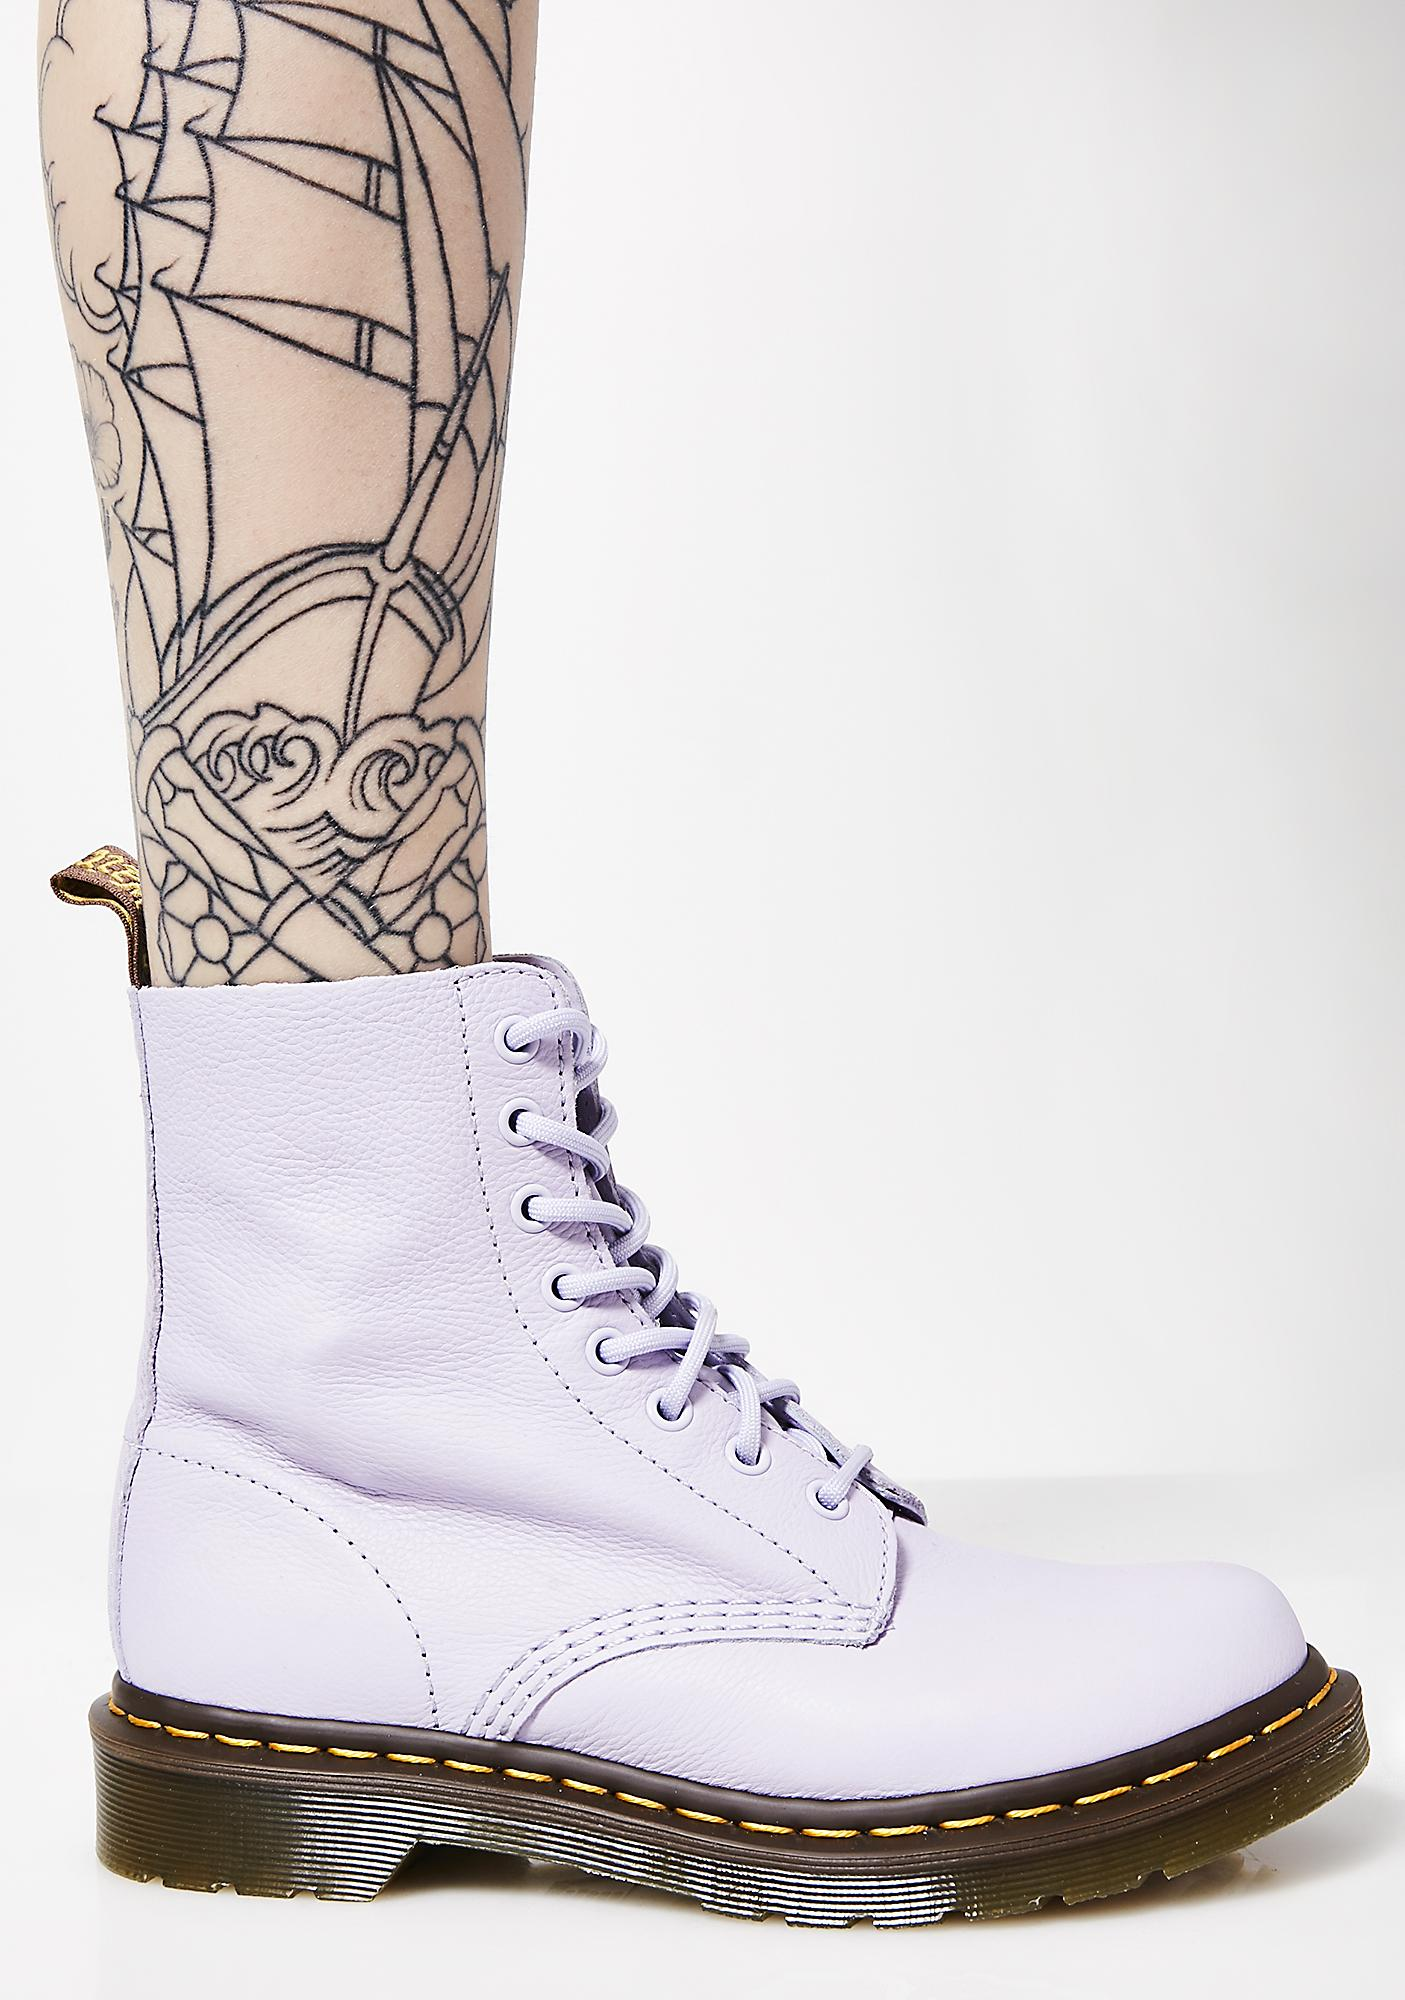 pre order sale online Purple Heather Pascal Boots for sale buy authentic online free shipping cheap reliable jlYYwwcG